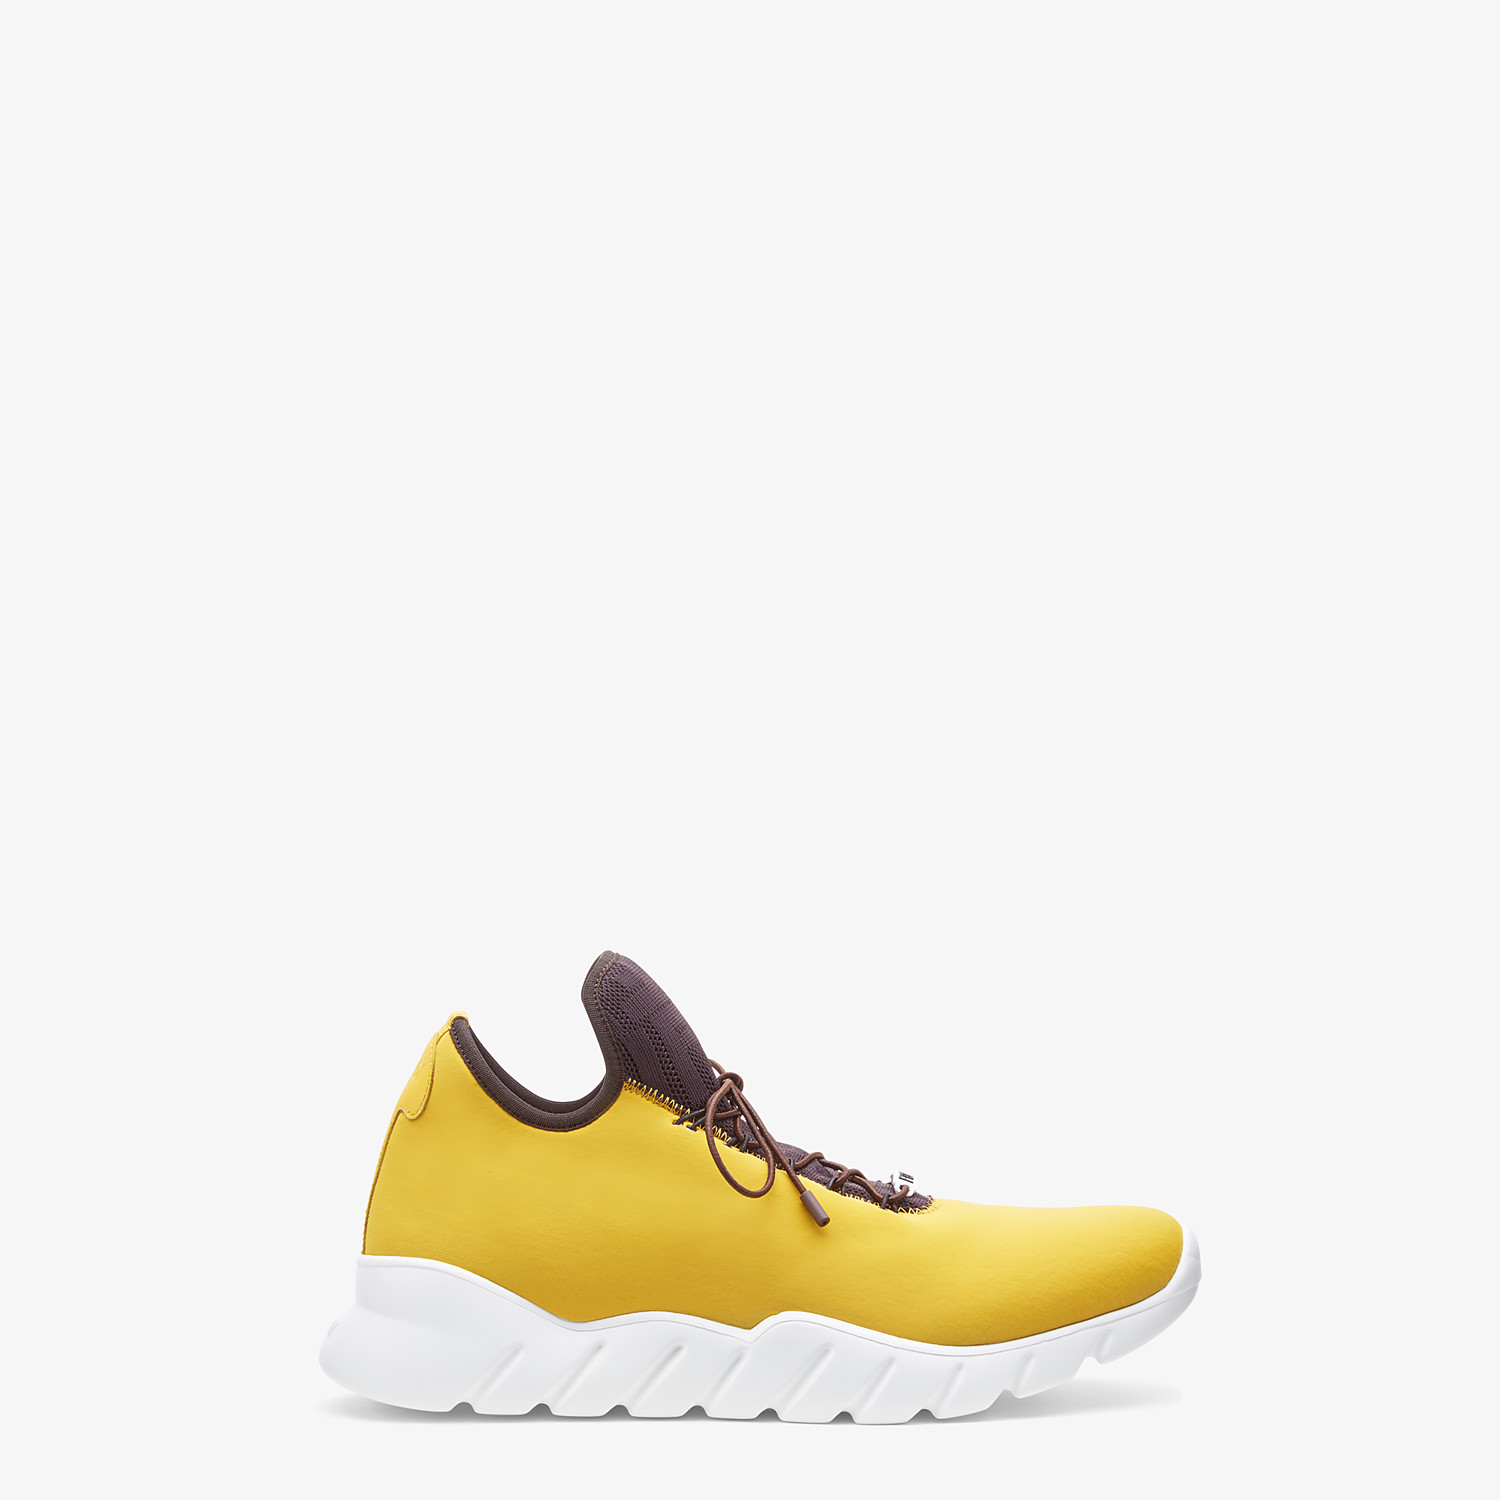 FENDI SNEAKERS - Yellow fabric high-tops - view 1 detail